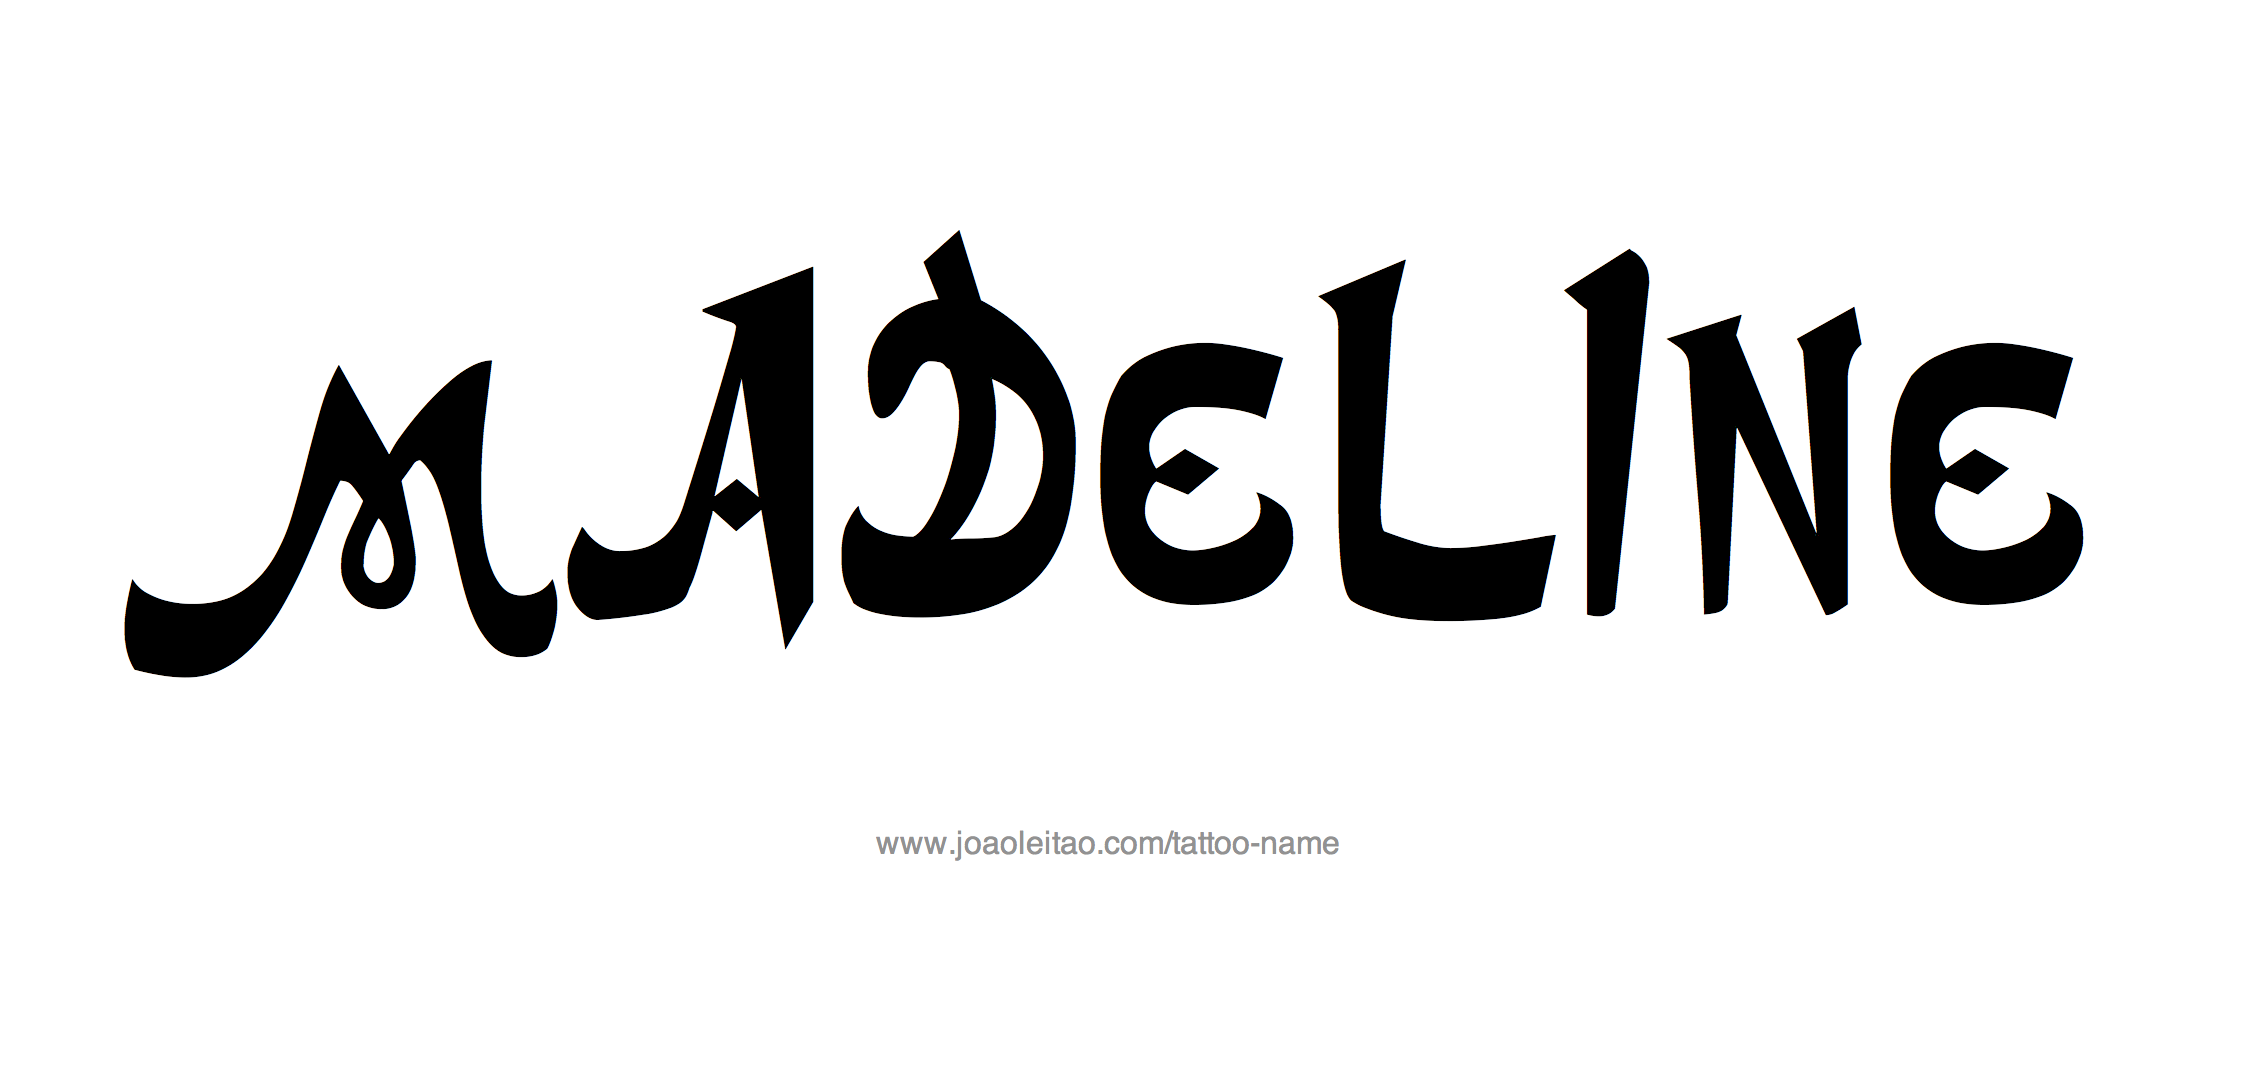 Madeline Name Tattoo Designs